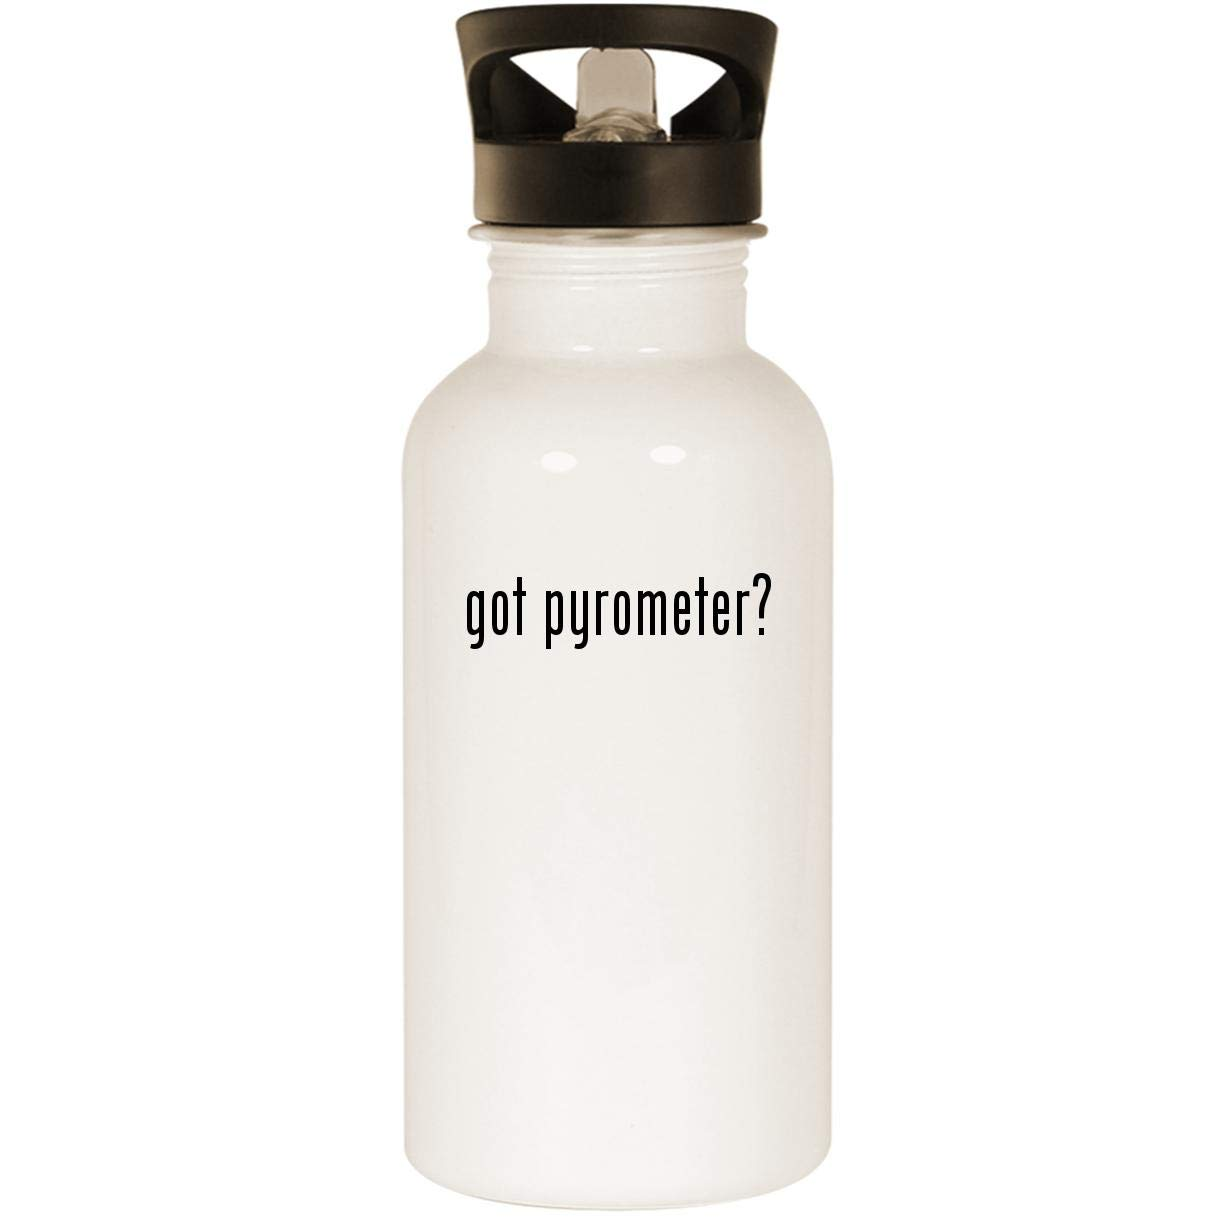 got pyrometer? - Stainless Steel 20oz Road Ready Water Bottle, White